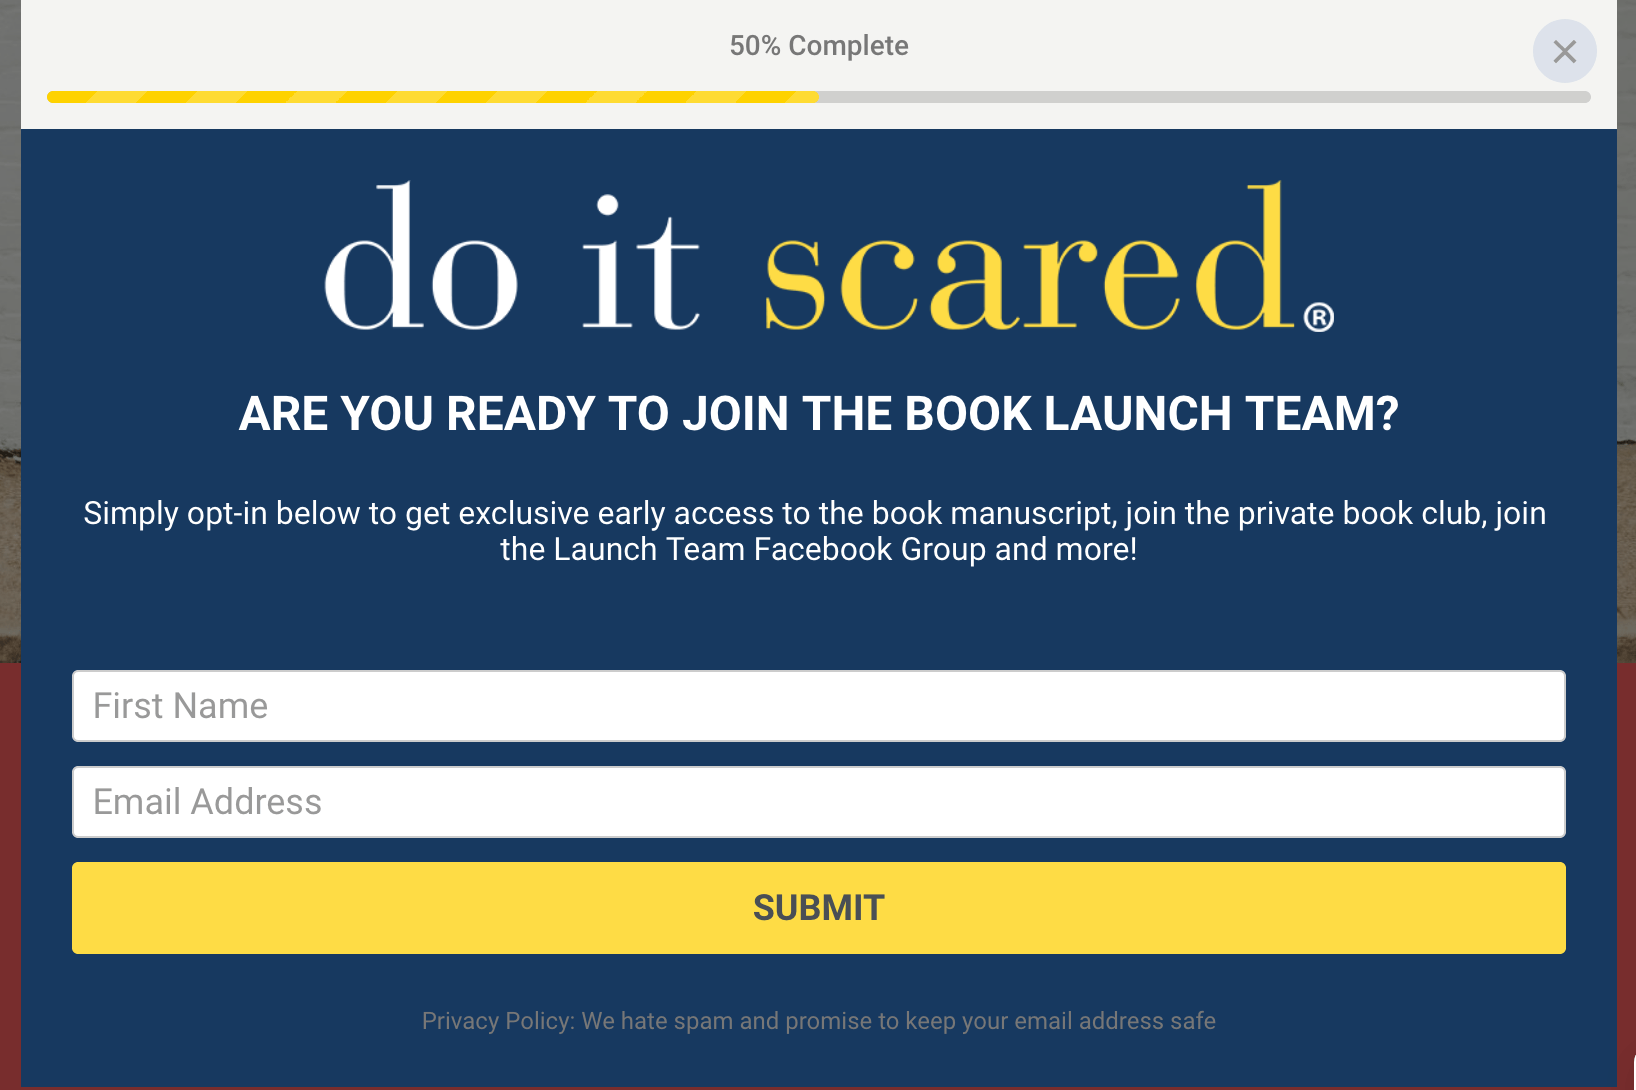 Step 3- Join the launch team!